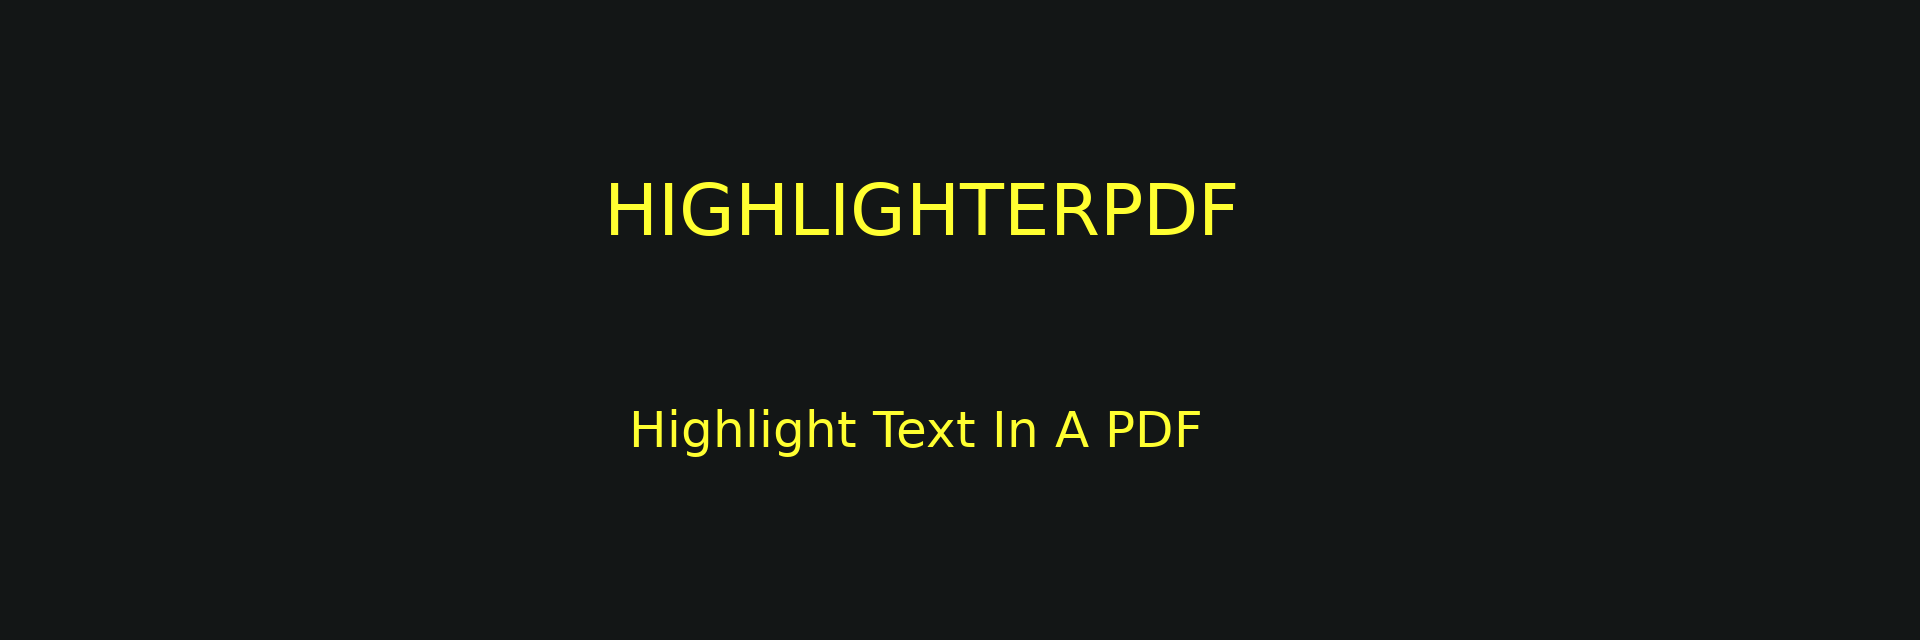 highlighterpdf banner